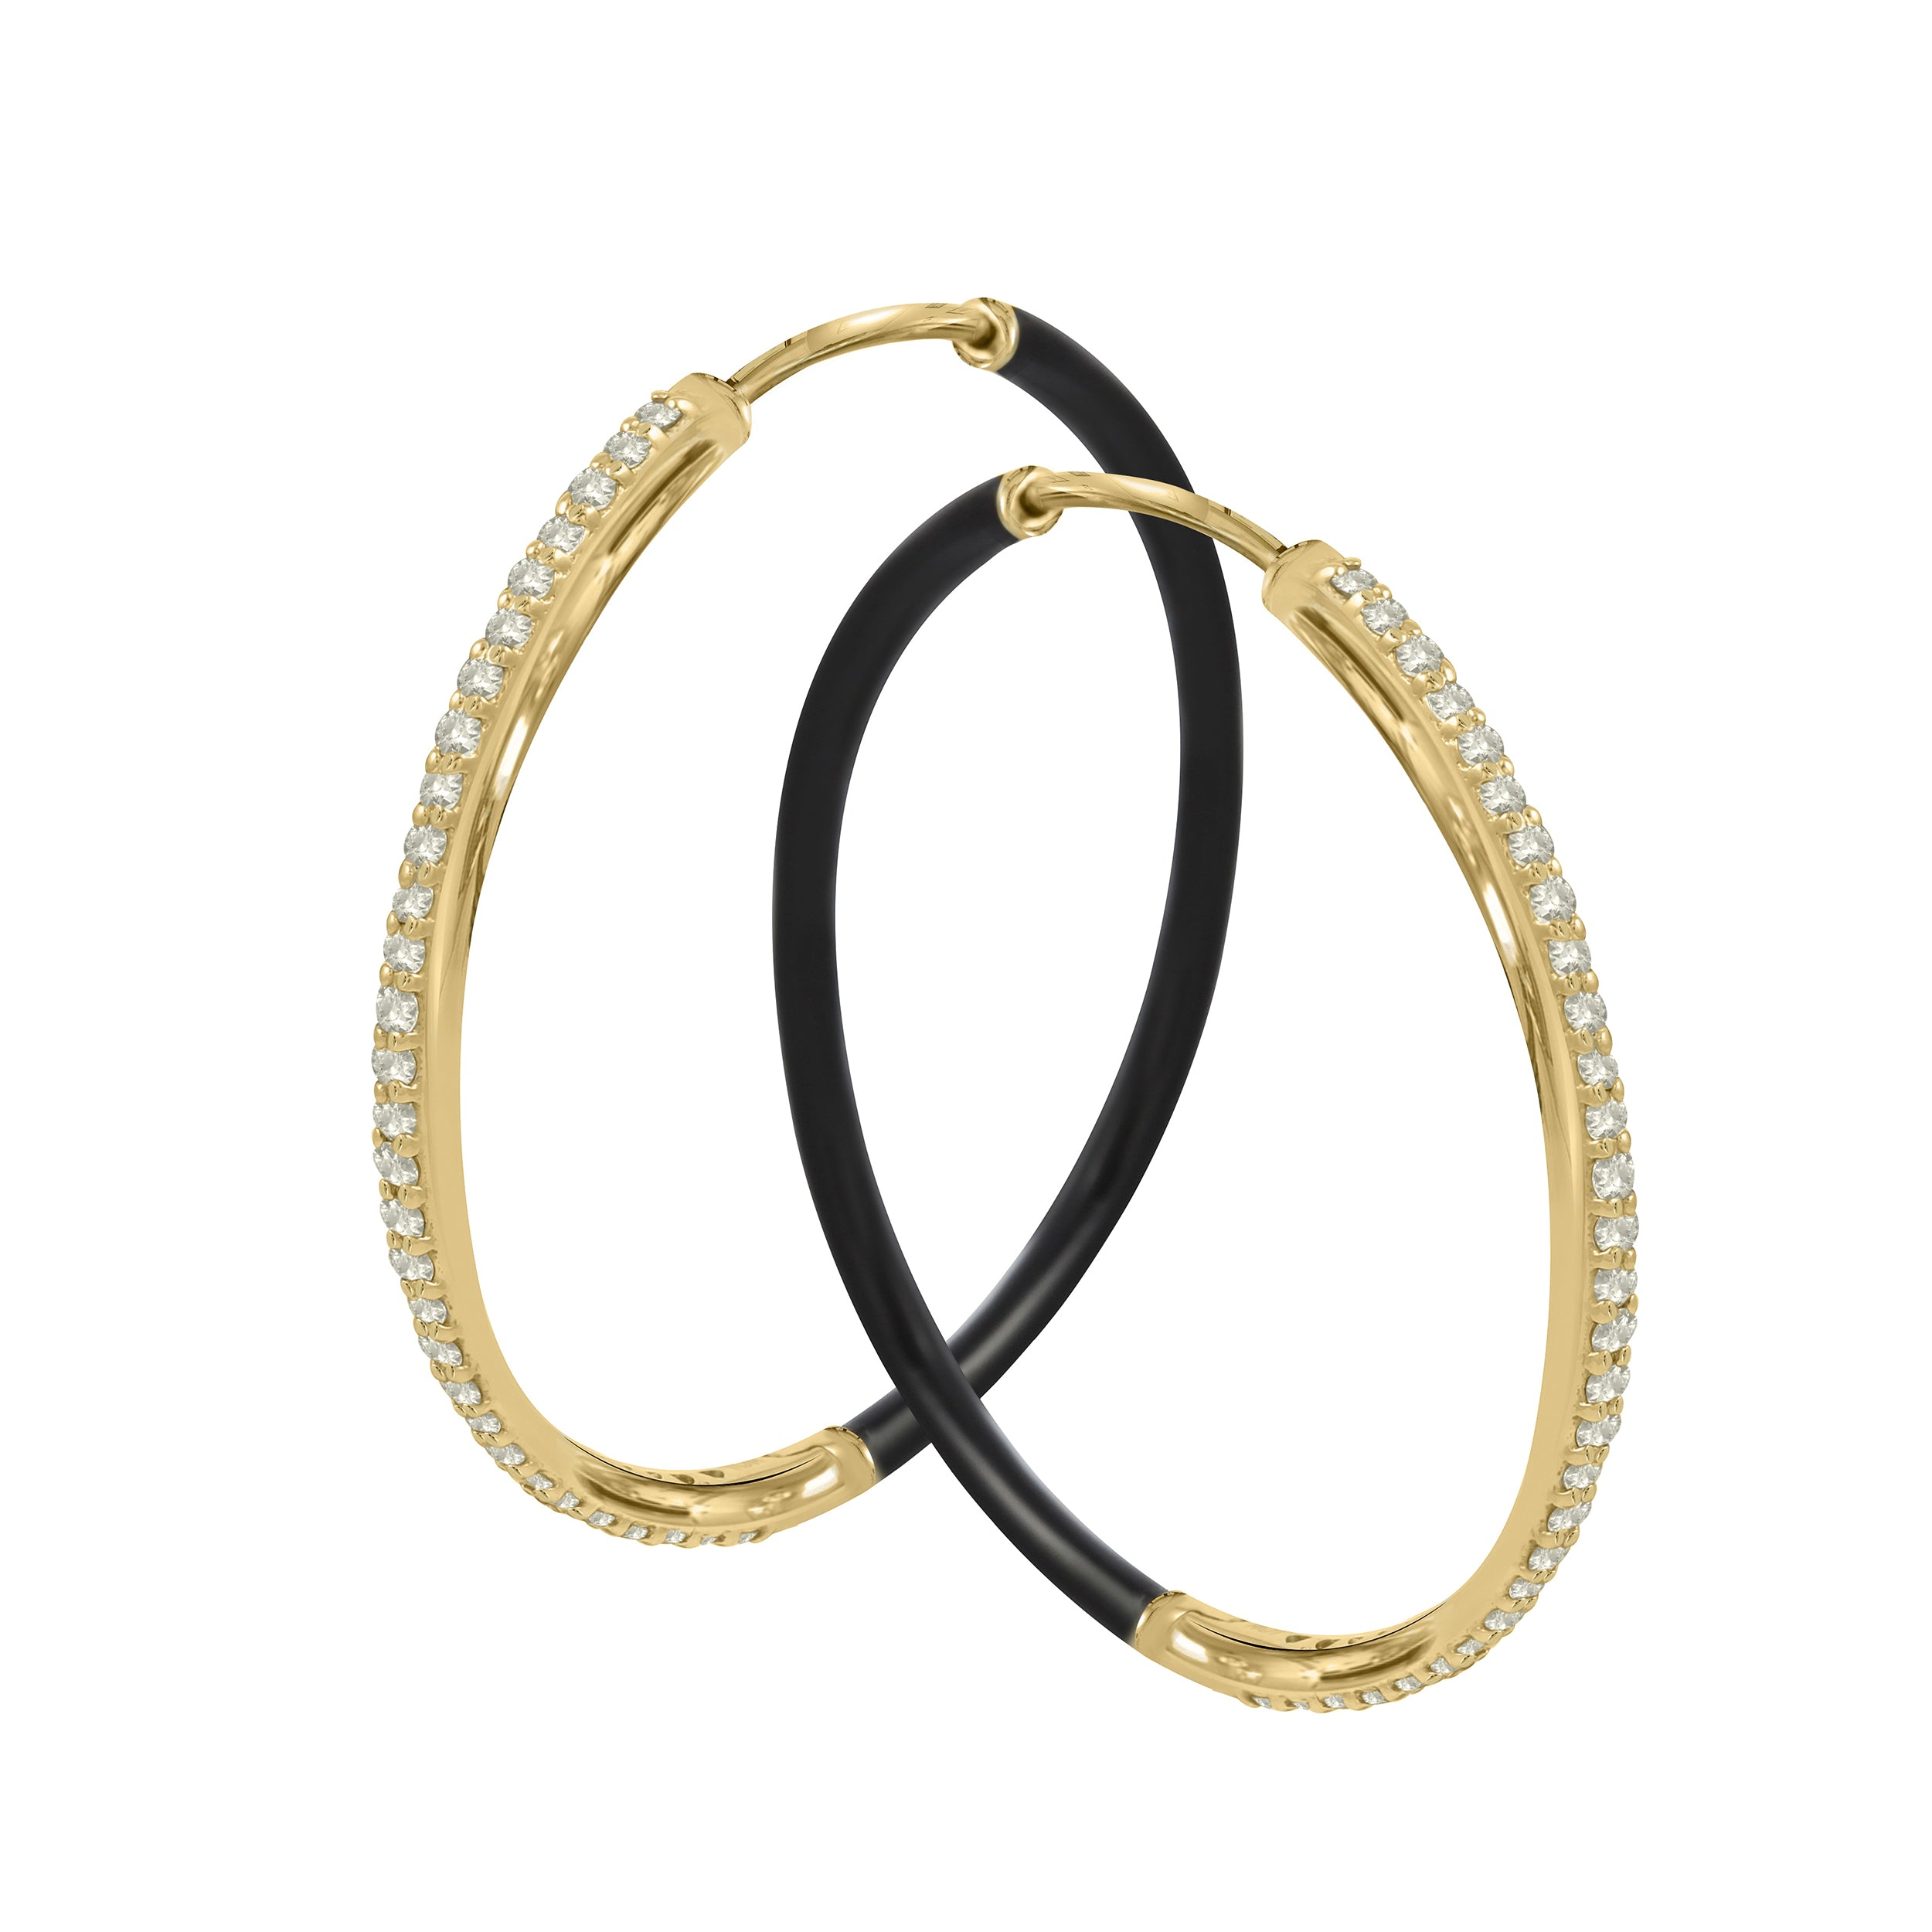 Even-Steven Diamond Hoops